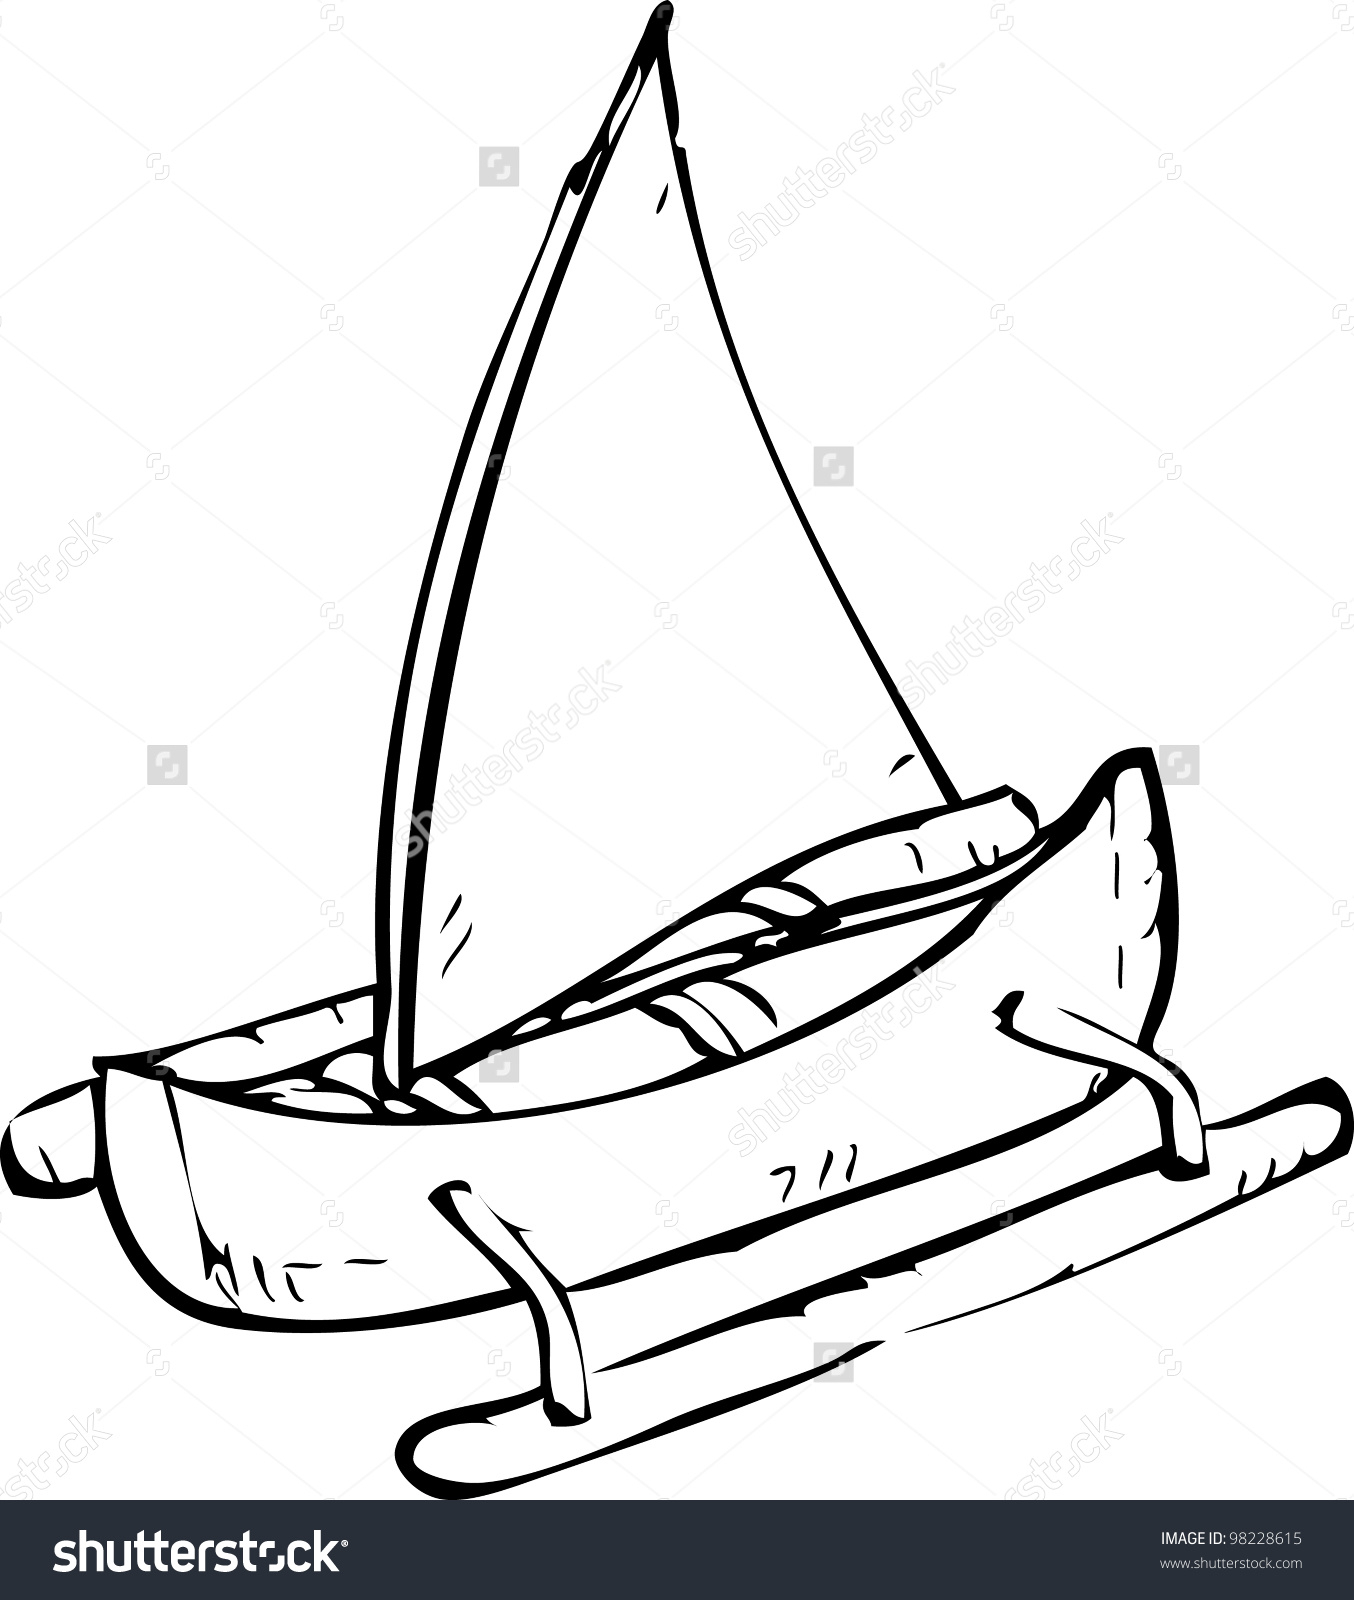 1354x1600 Simple Drawing Of Boat